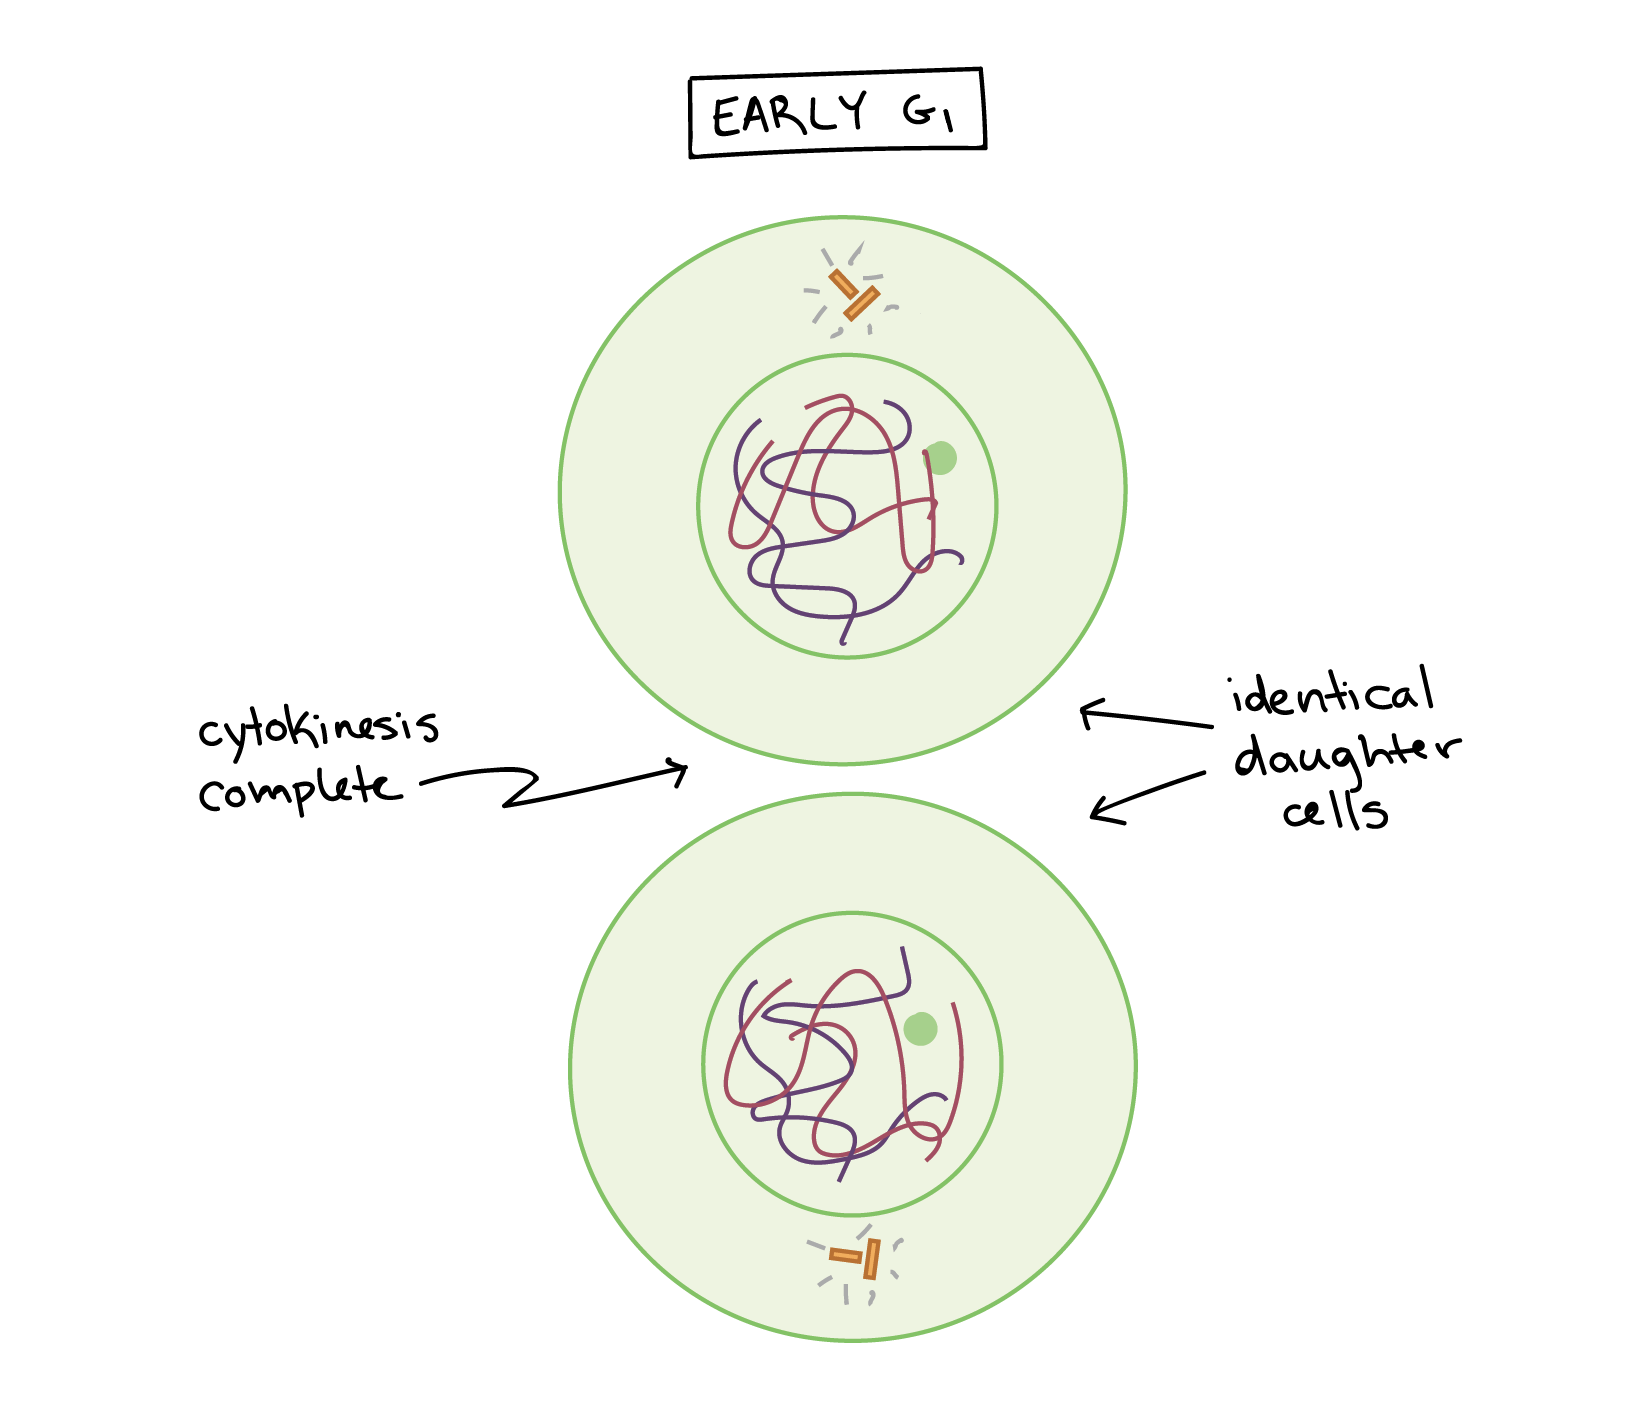 hight resolution of Phases of mitosis   Mitosis   Biology (article)   Khan Academy